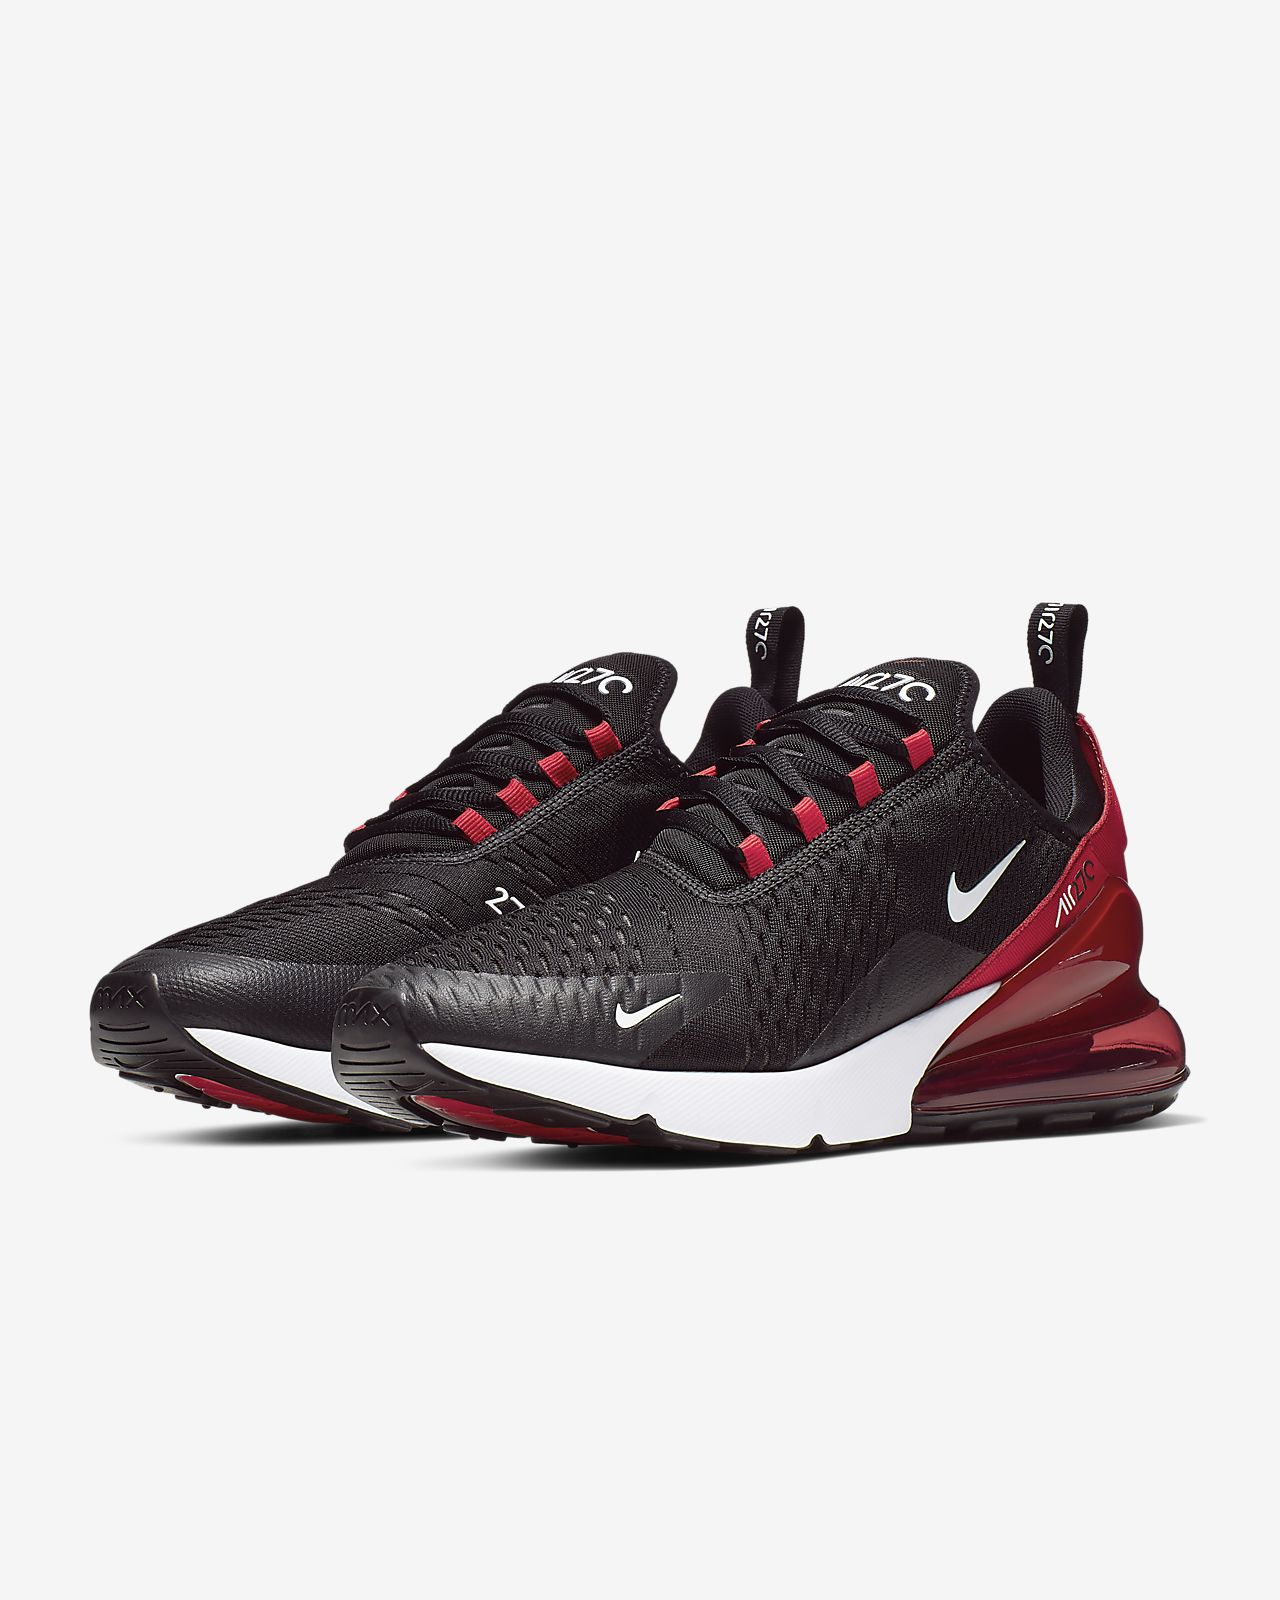 best service 07217 d1b38 Low Resolution Nike Air Max 270 Men s Shoe Nike Air Max 270 Men s Shoe